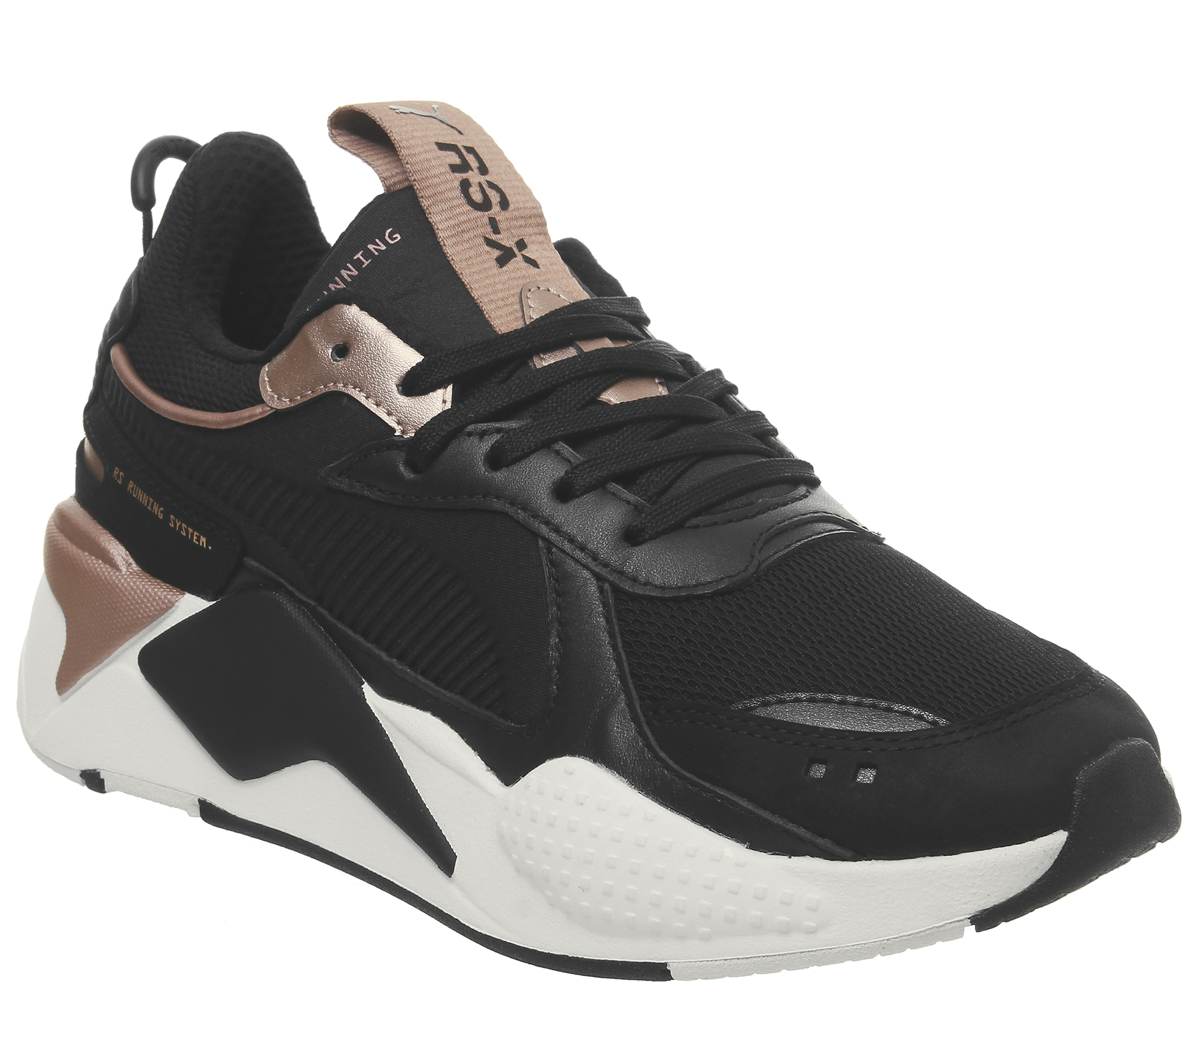 fc62afd13807 Sentinel Womens Puma Rs-X Trophy Trainers Puma Black Rose Gold Trainers  Shoes